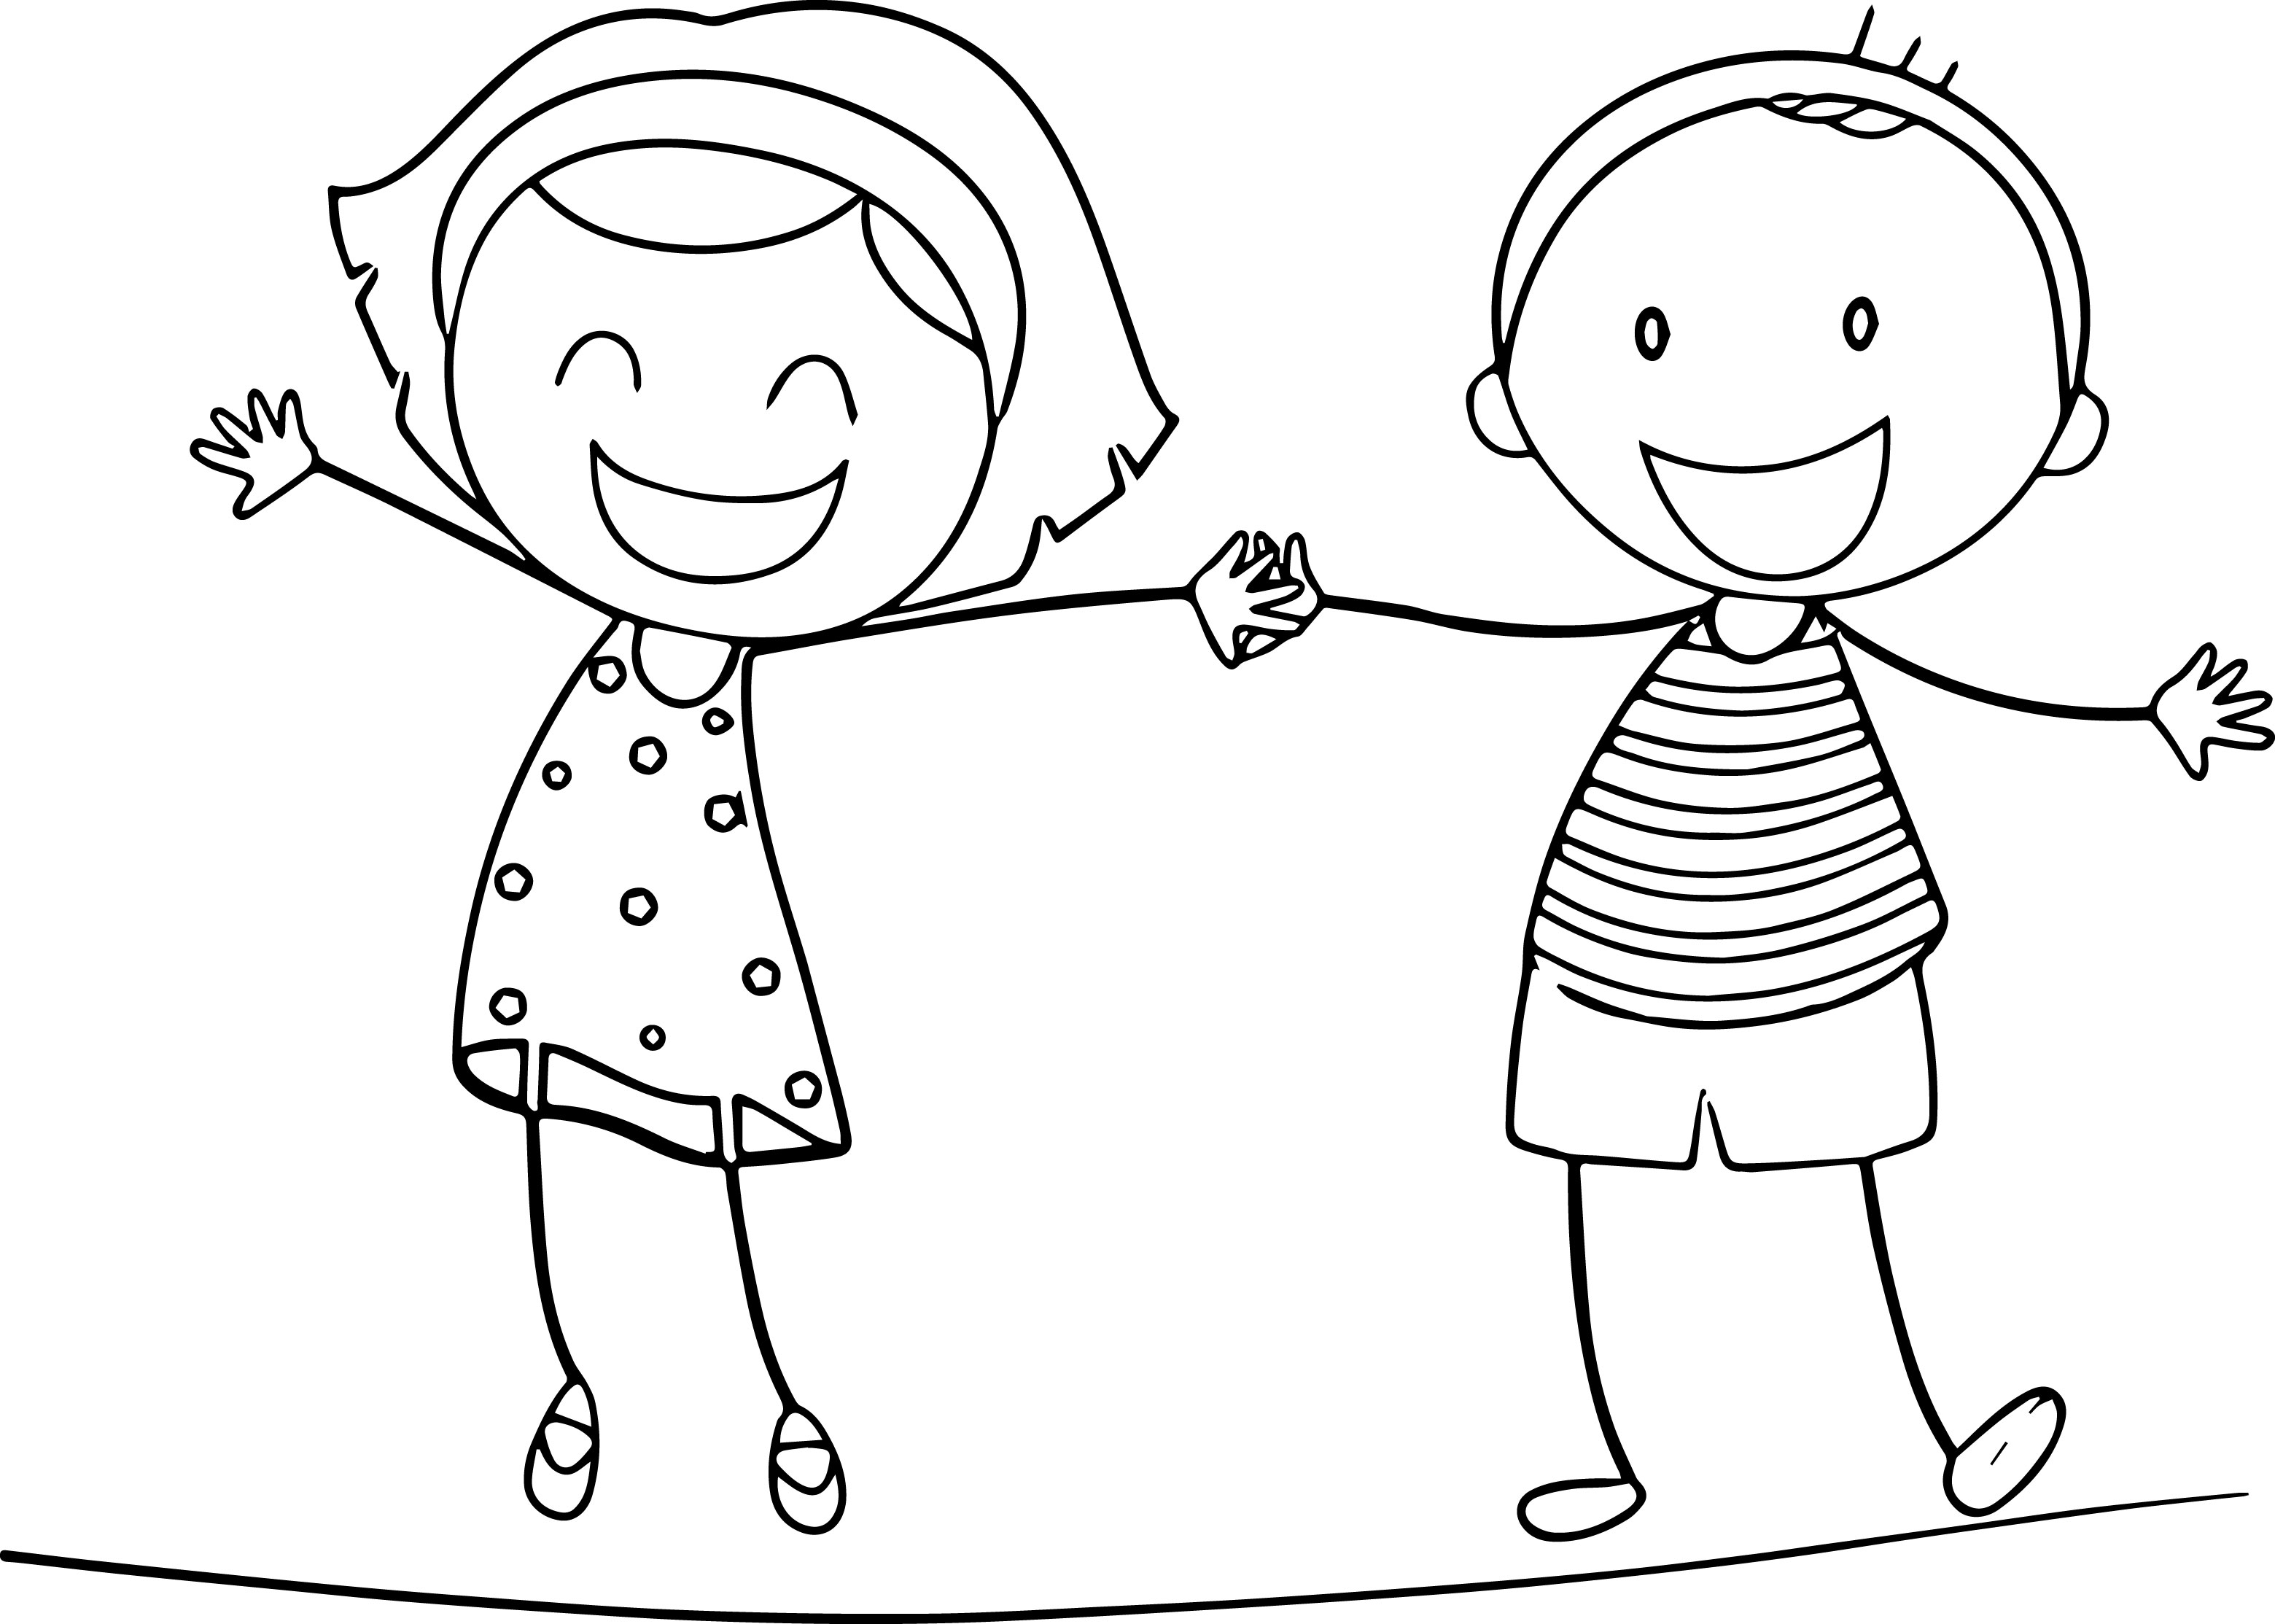 Boy And Girl Cartoon Drawing At Getdrawings